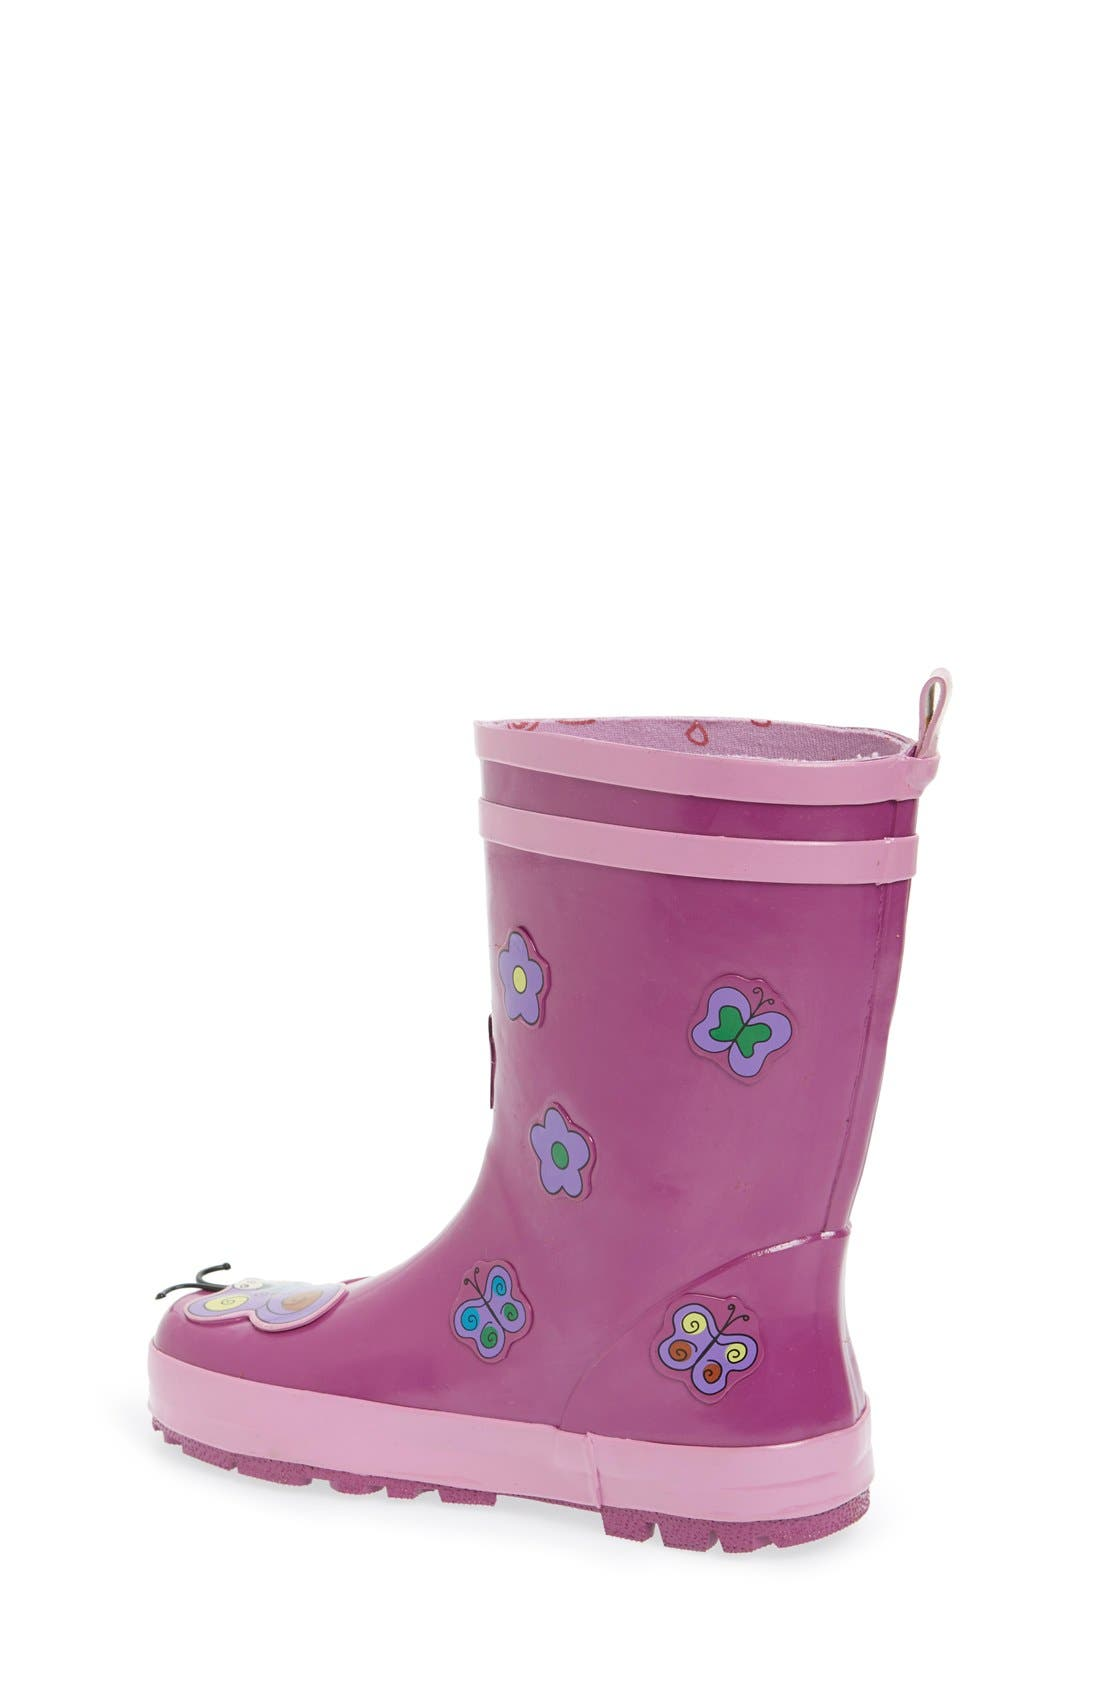 'Butterfly' Waterproof Rain Boot,                             Alternate thumbnail 2, color,                             500